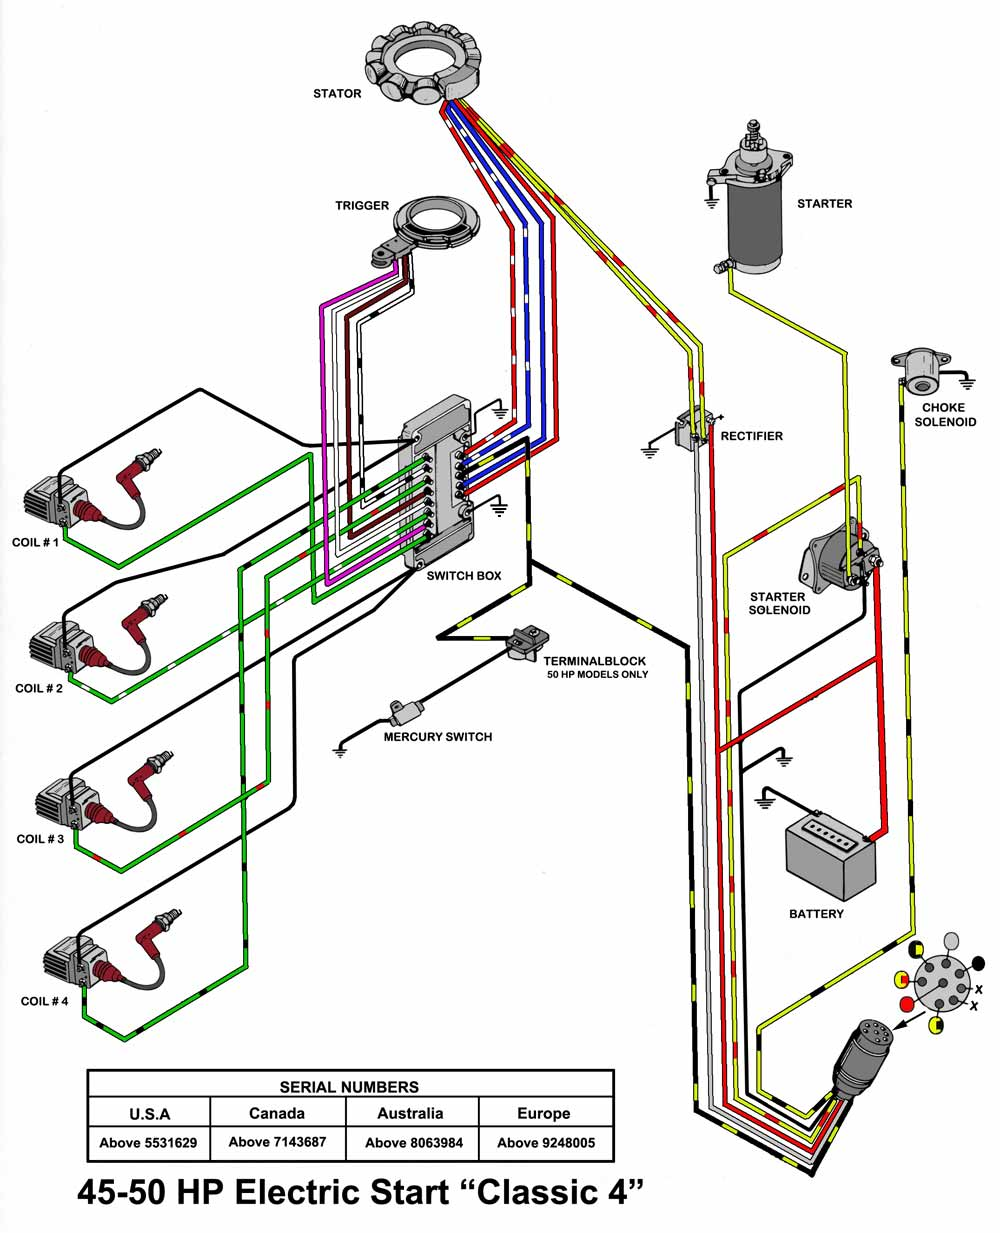 60?resize=665%2C820 1988 johnson outboard wiring diagram wiring diagram,Starter 40 Diagram Mercury Hp Wiring Outboard Solend